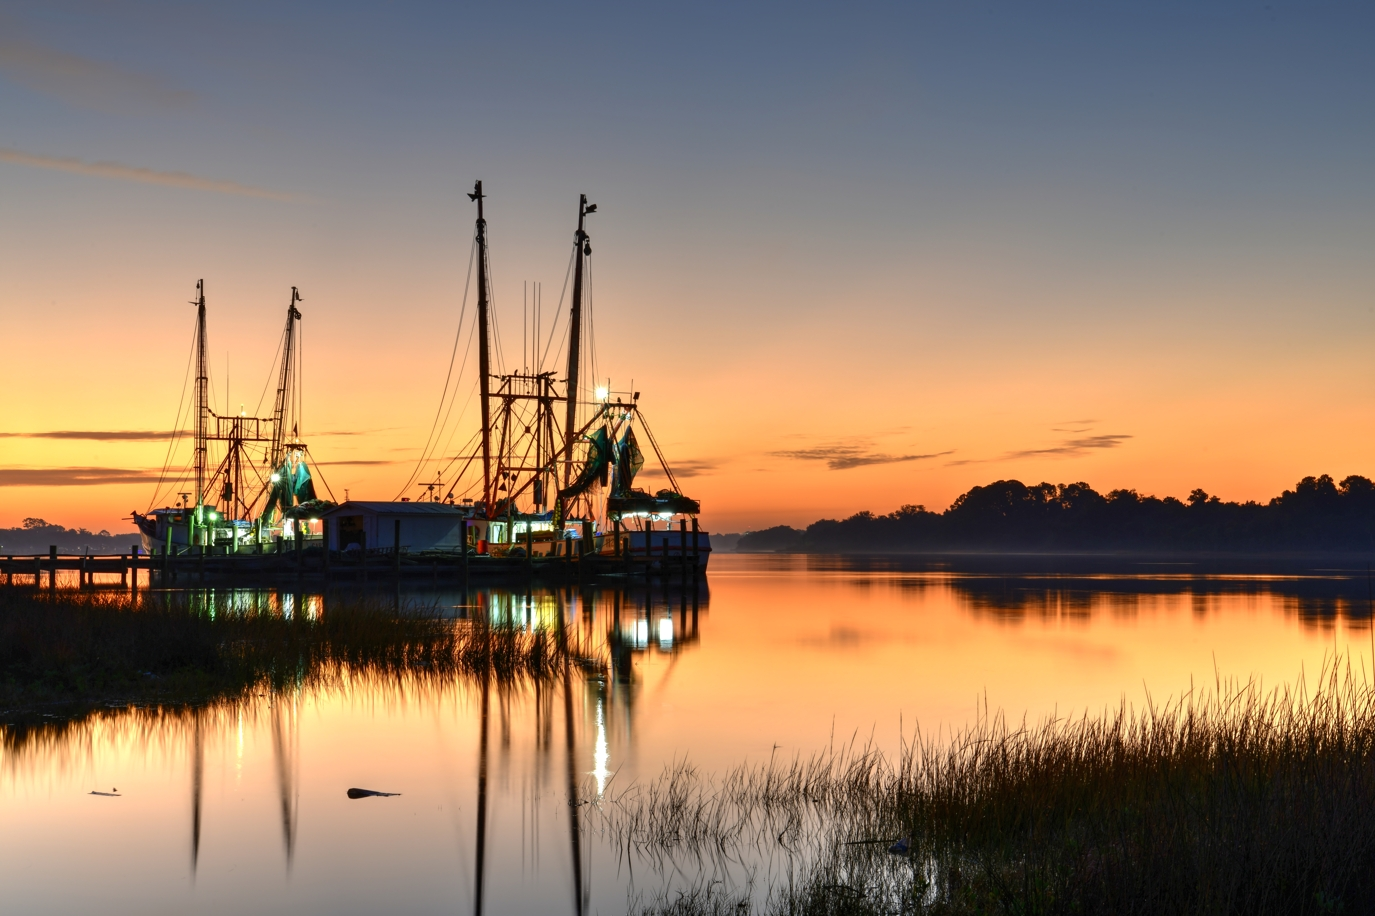 Shrimp boats on the St Johns river, USA